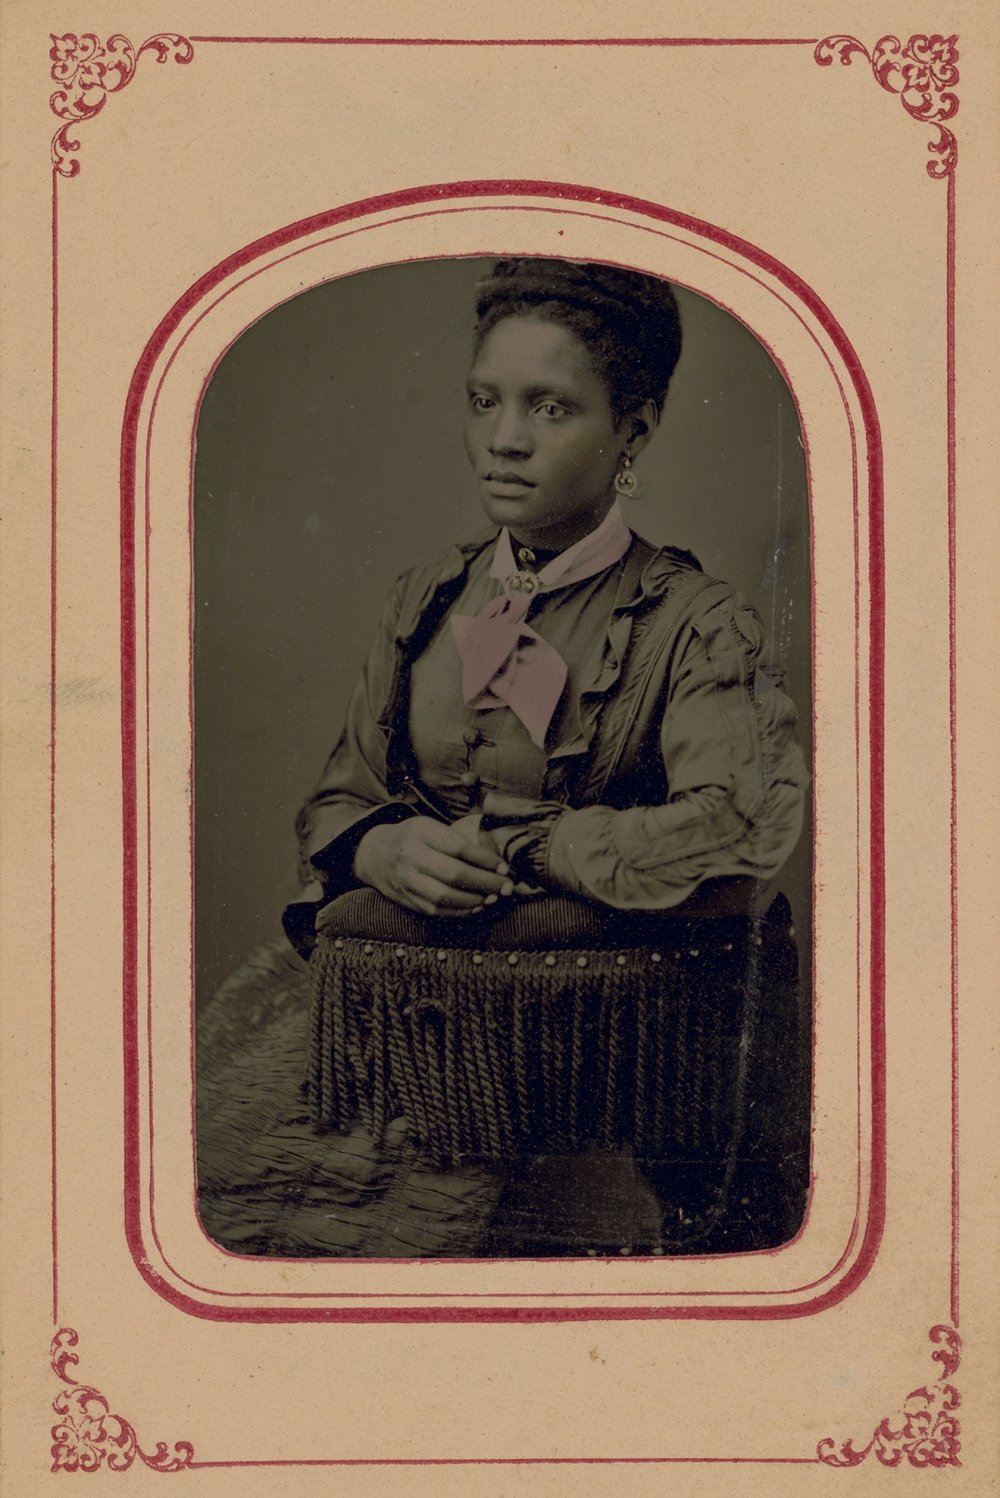 Portraits of Nineteenth Century African American Women Activists Newly Available Online